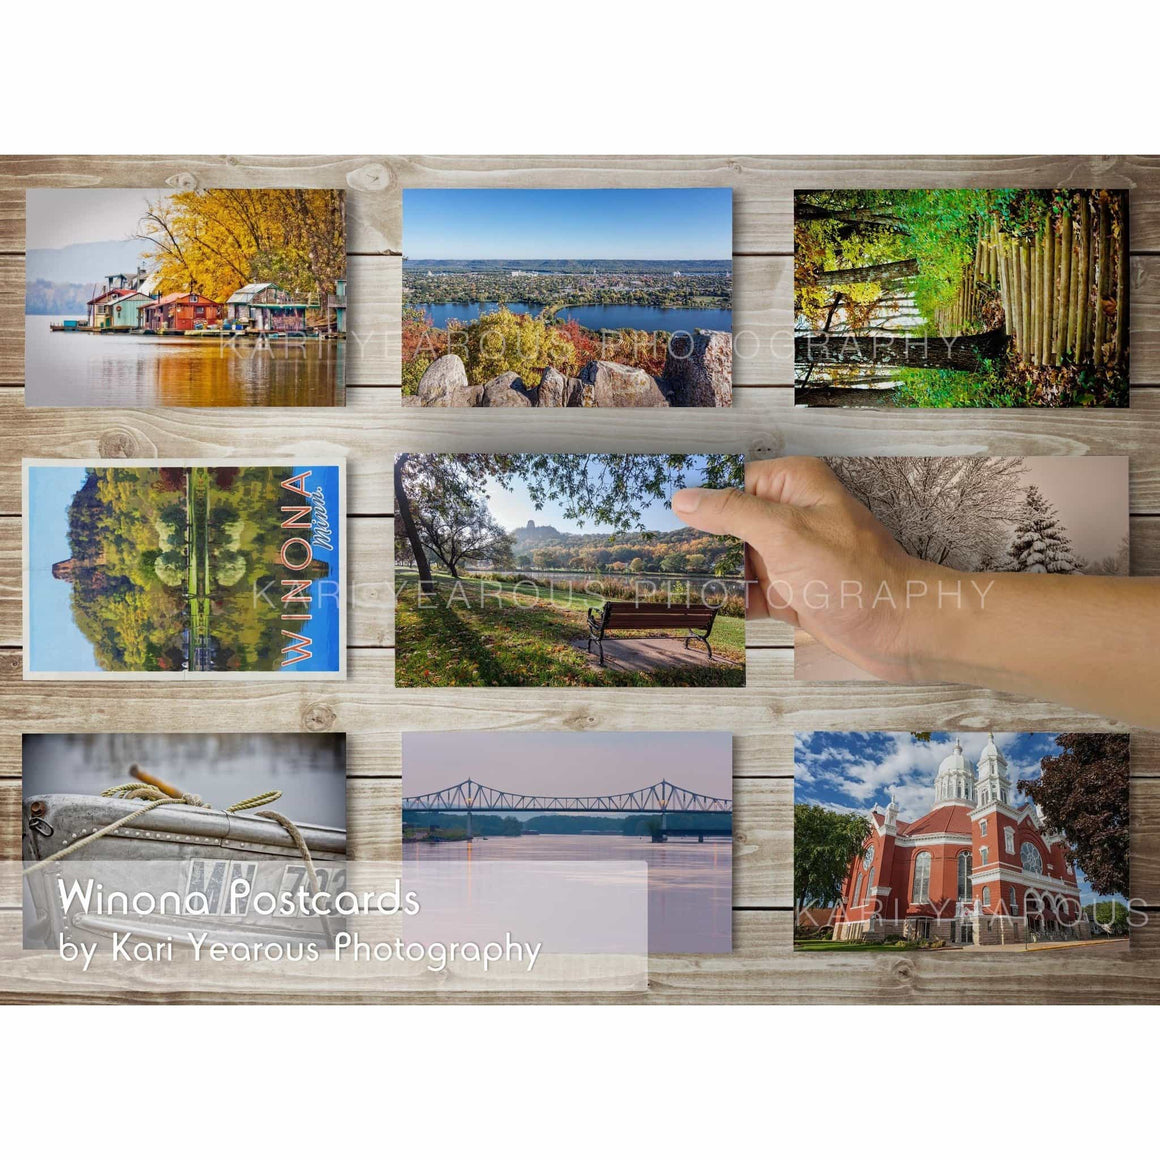 winona minnesota postcards by Kari Yearous Photography